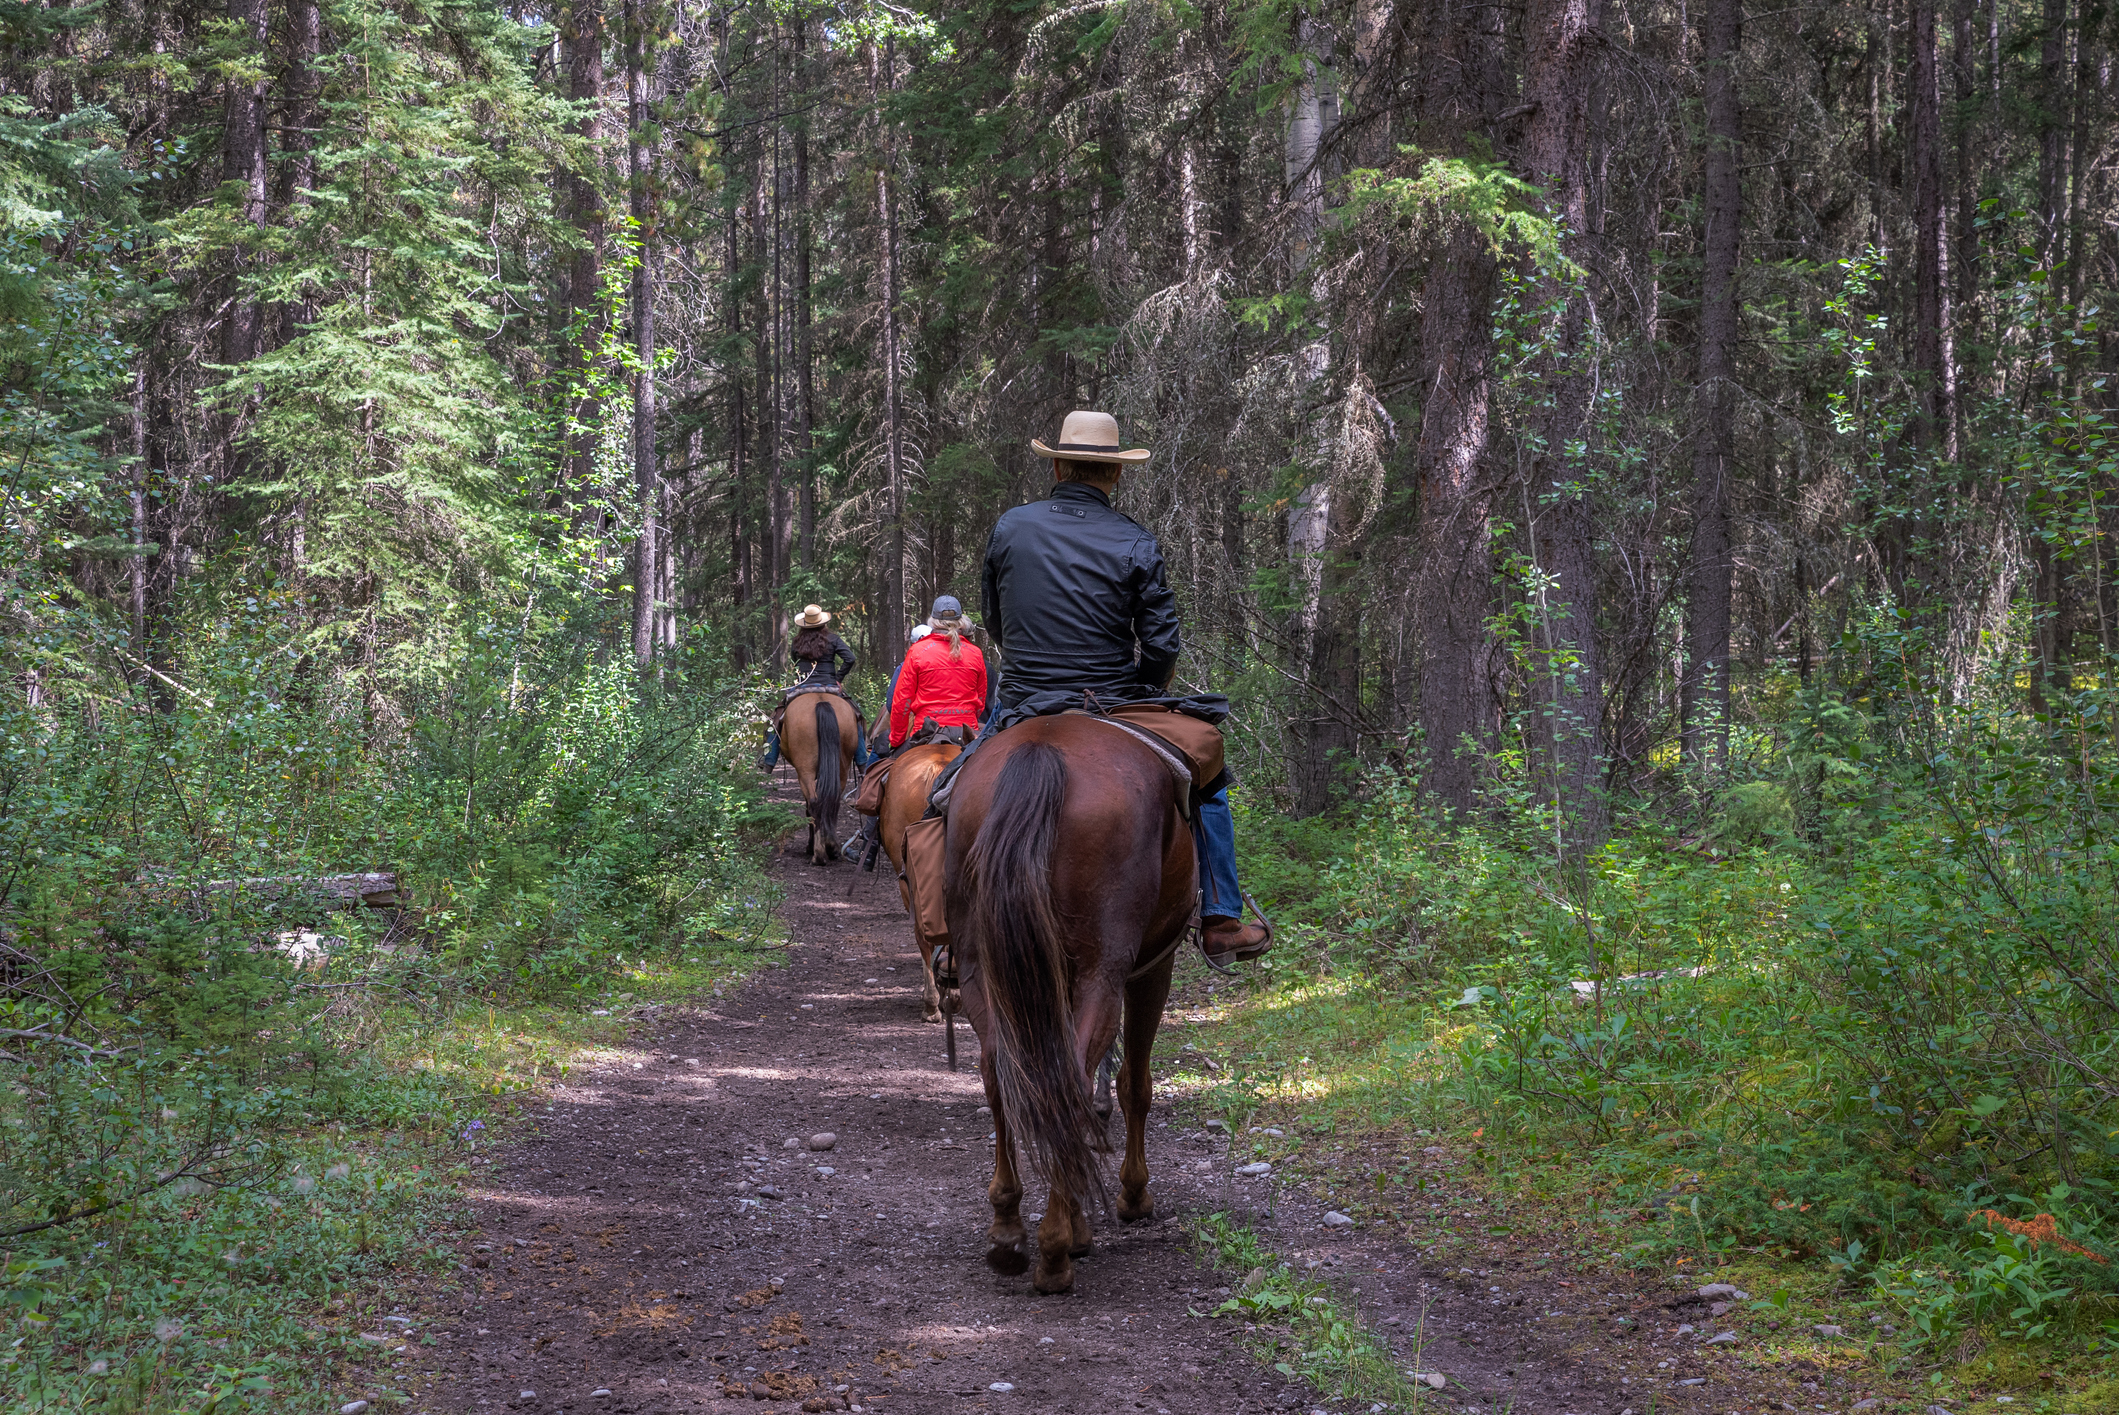 Trail Riders in a Forest